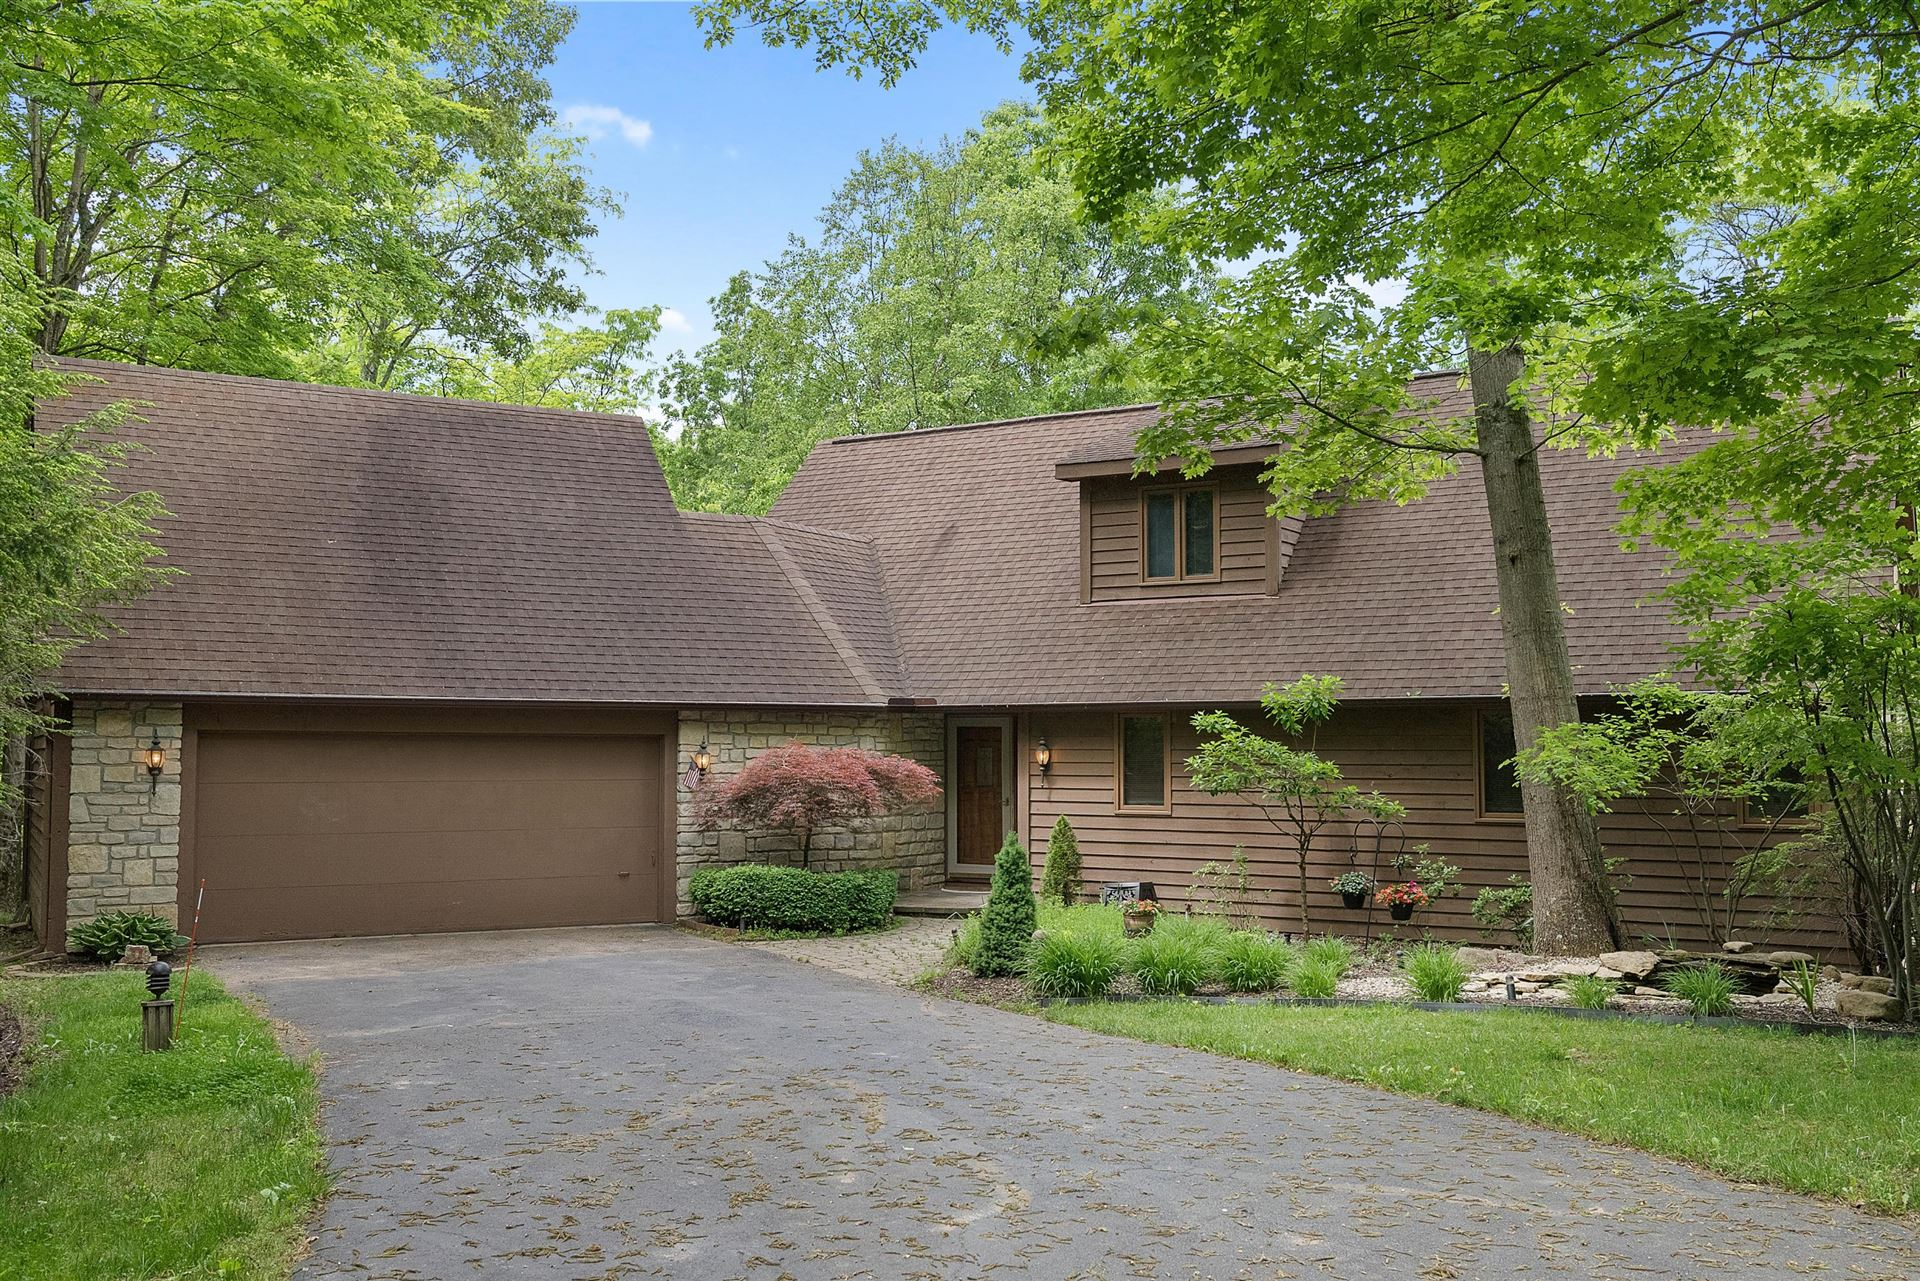 Photo of 5130 Red Bank Road, Galena, OH 43021 (MLS # 221014003)